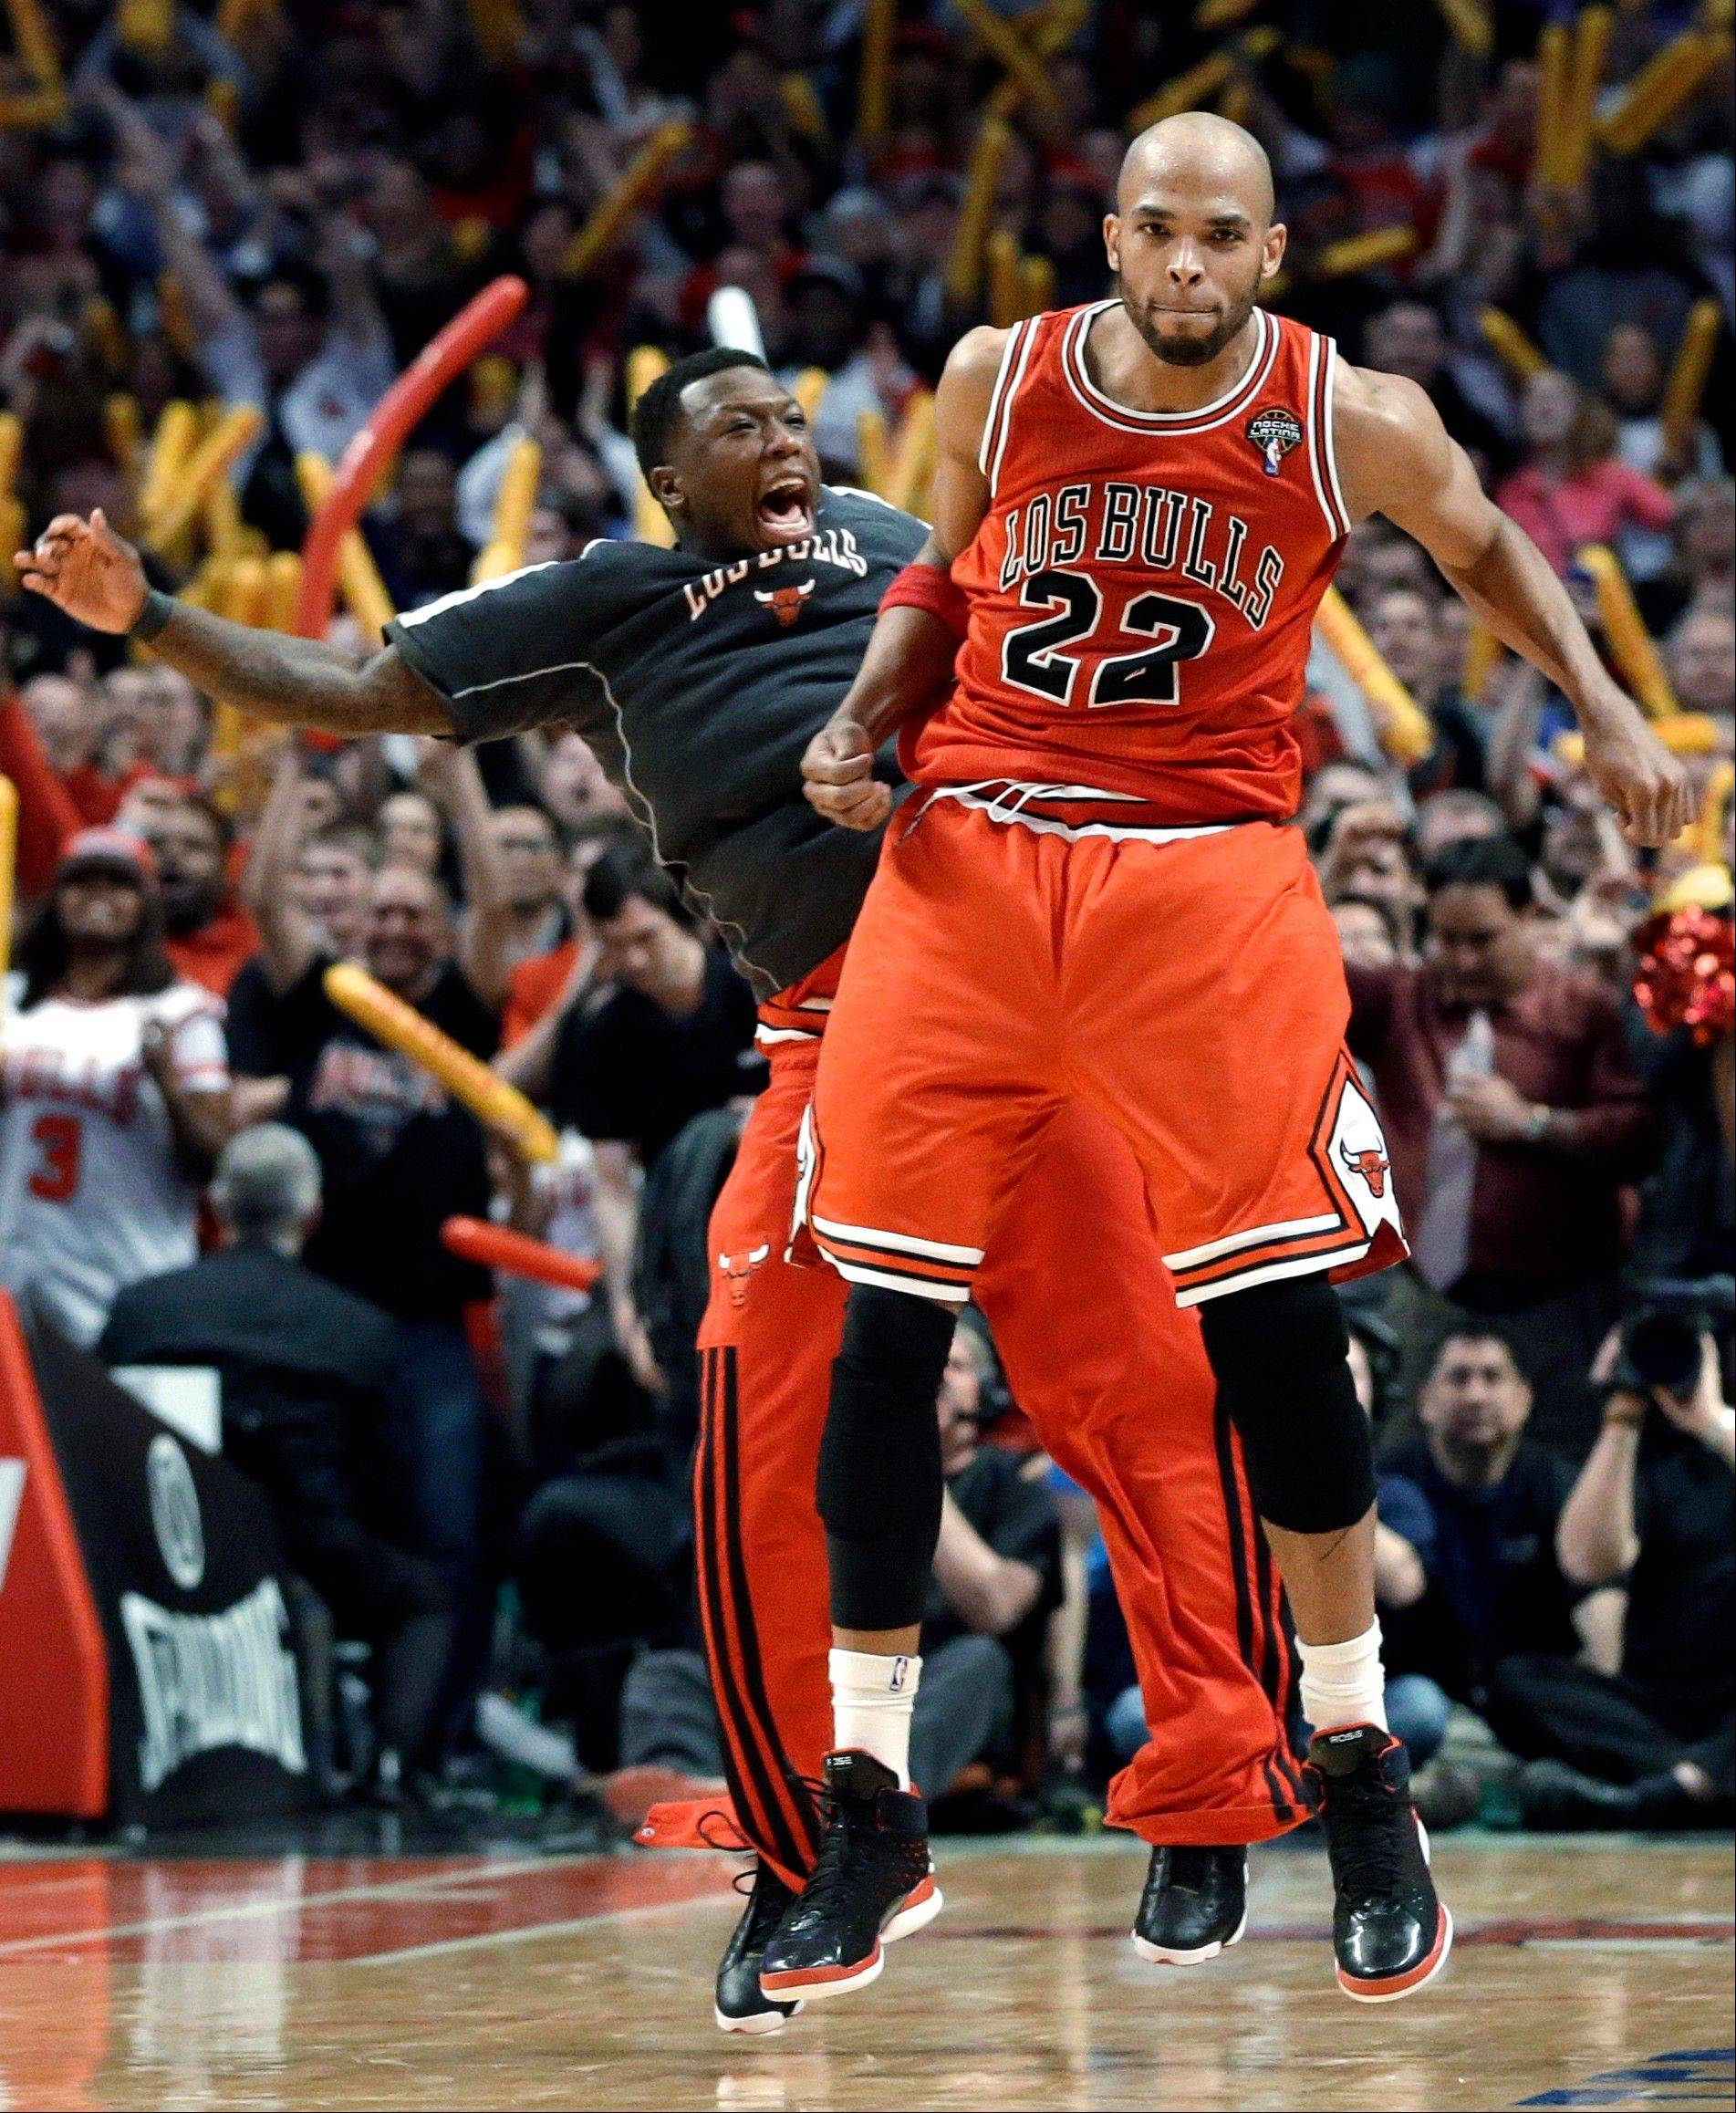 Bulls forward Taj Gibson (22) celebrates with Nate Robinson after scoring a basket during the second half of an NBA basketball game against the Miami Heat in Chicago on Wednesday, March 27, 2013. The Bulls won 101-97, ending the Heat's 27-game winning streak.